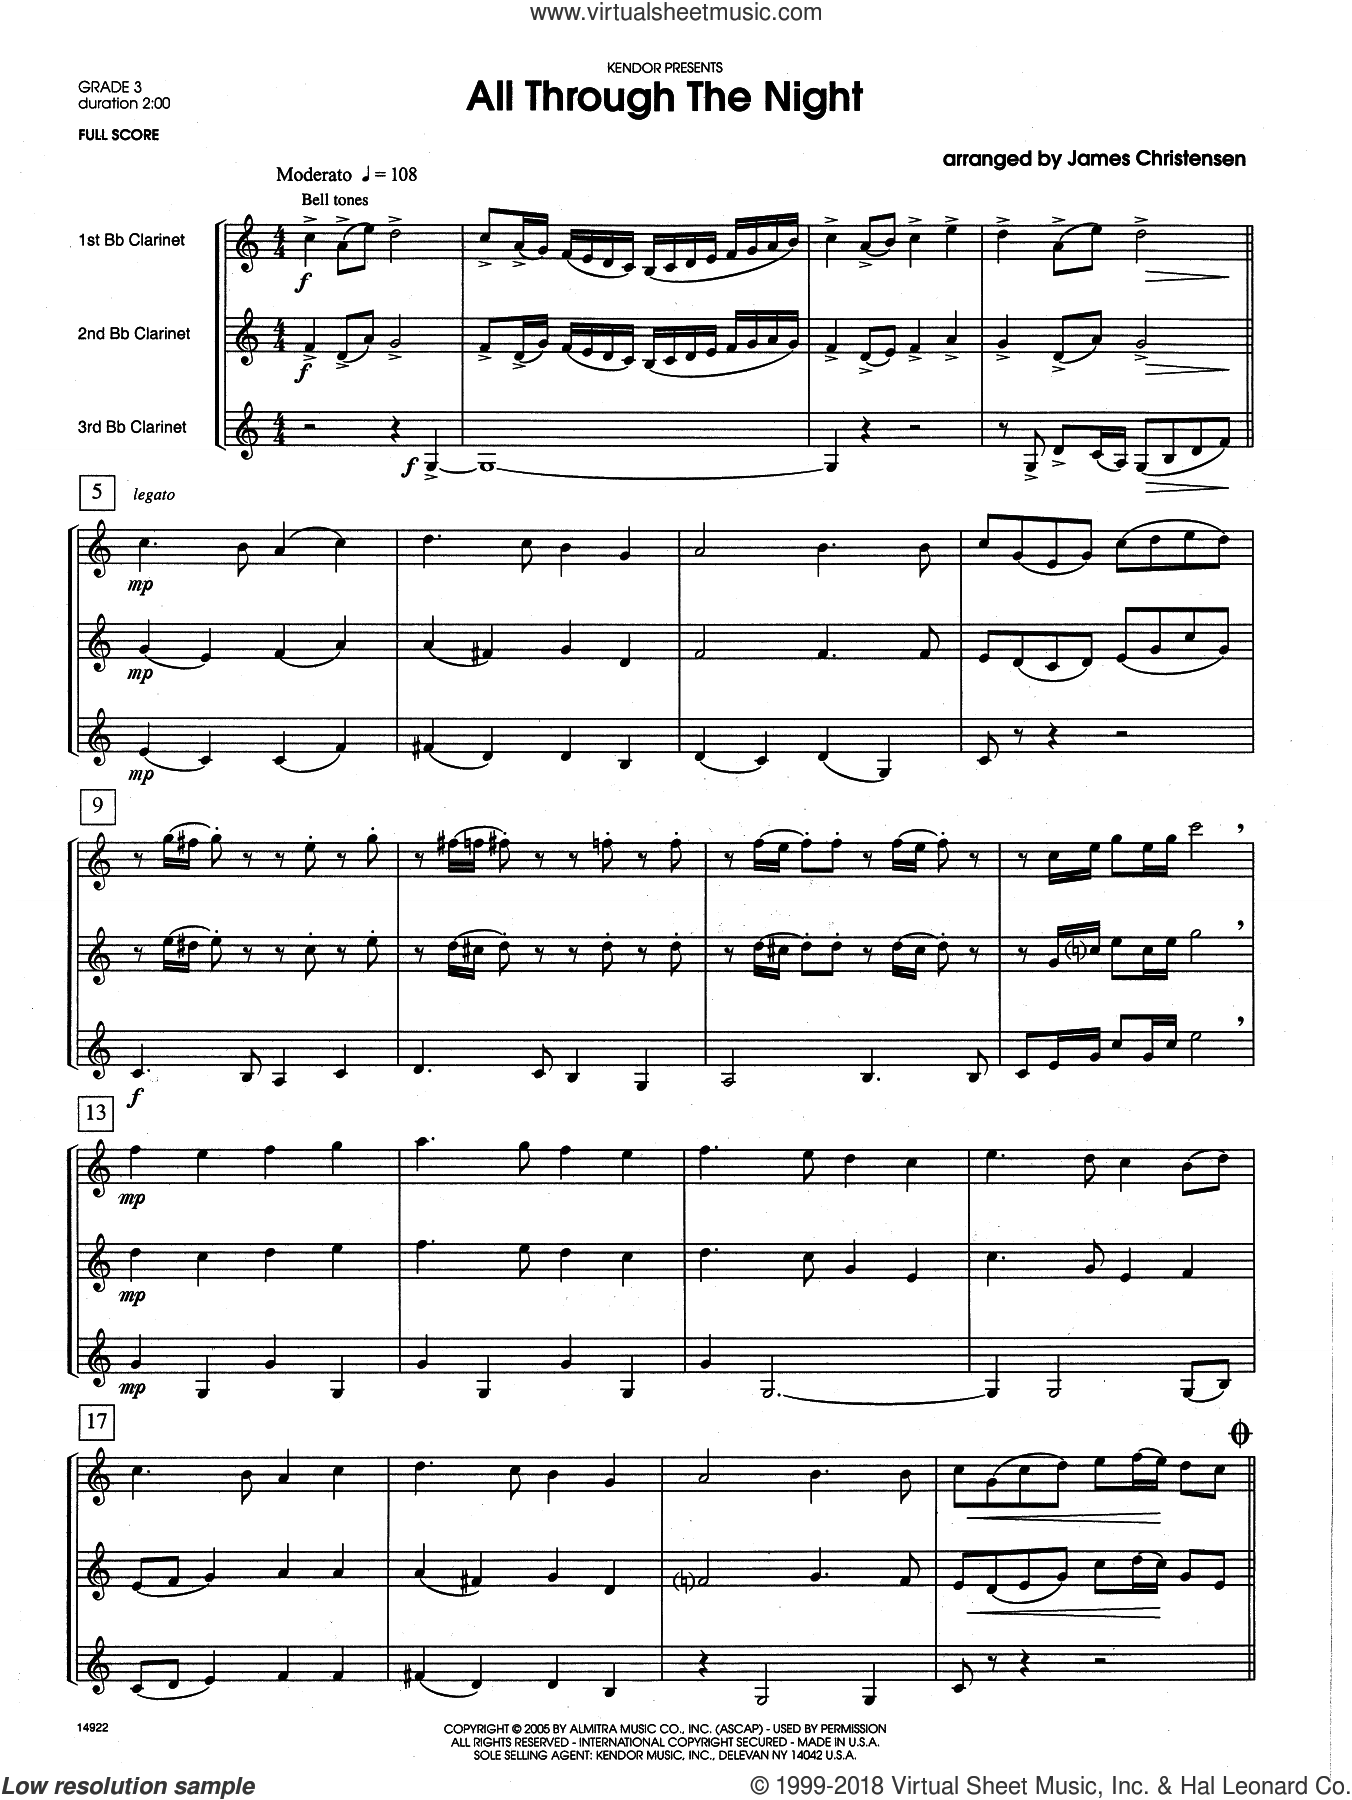 All Through the Night (COMPLETE) sheet music for clarinet quartet by James Christensen, intermediate